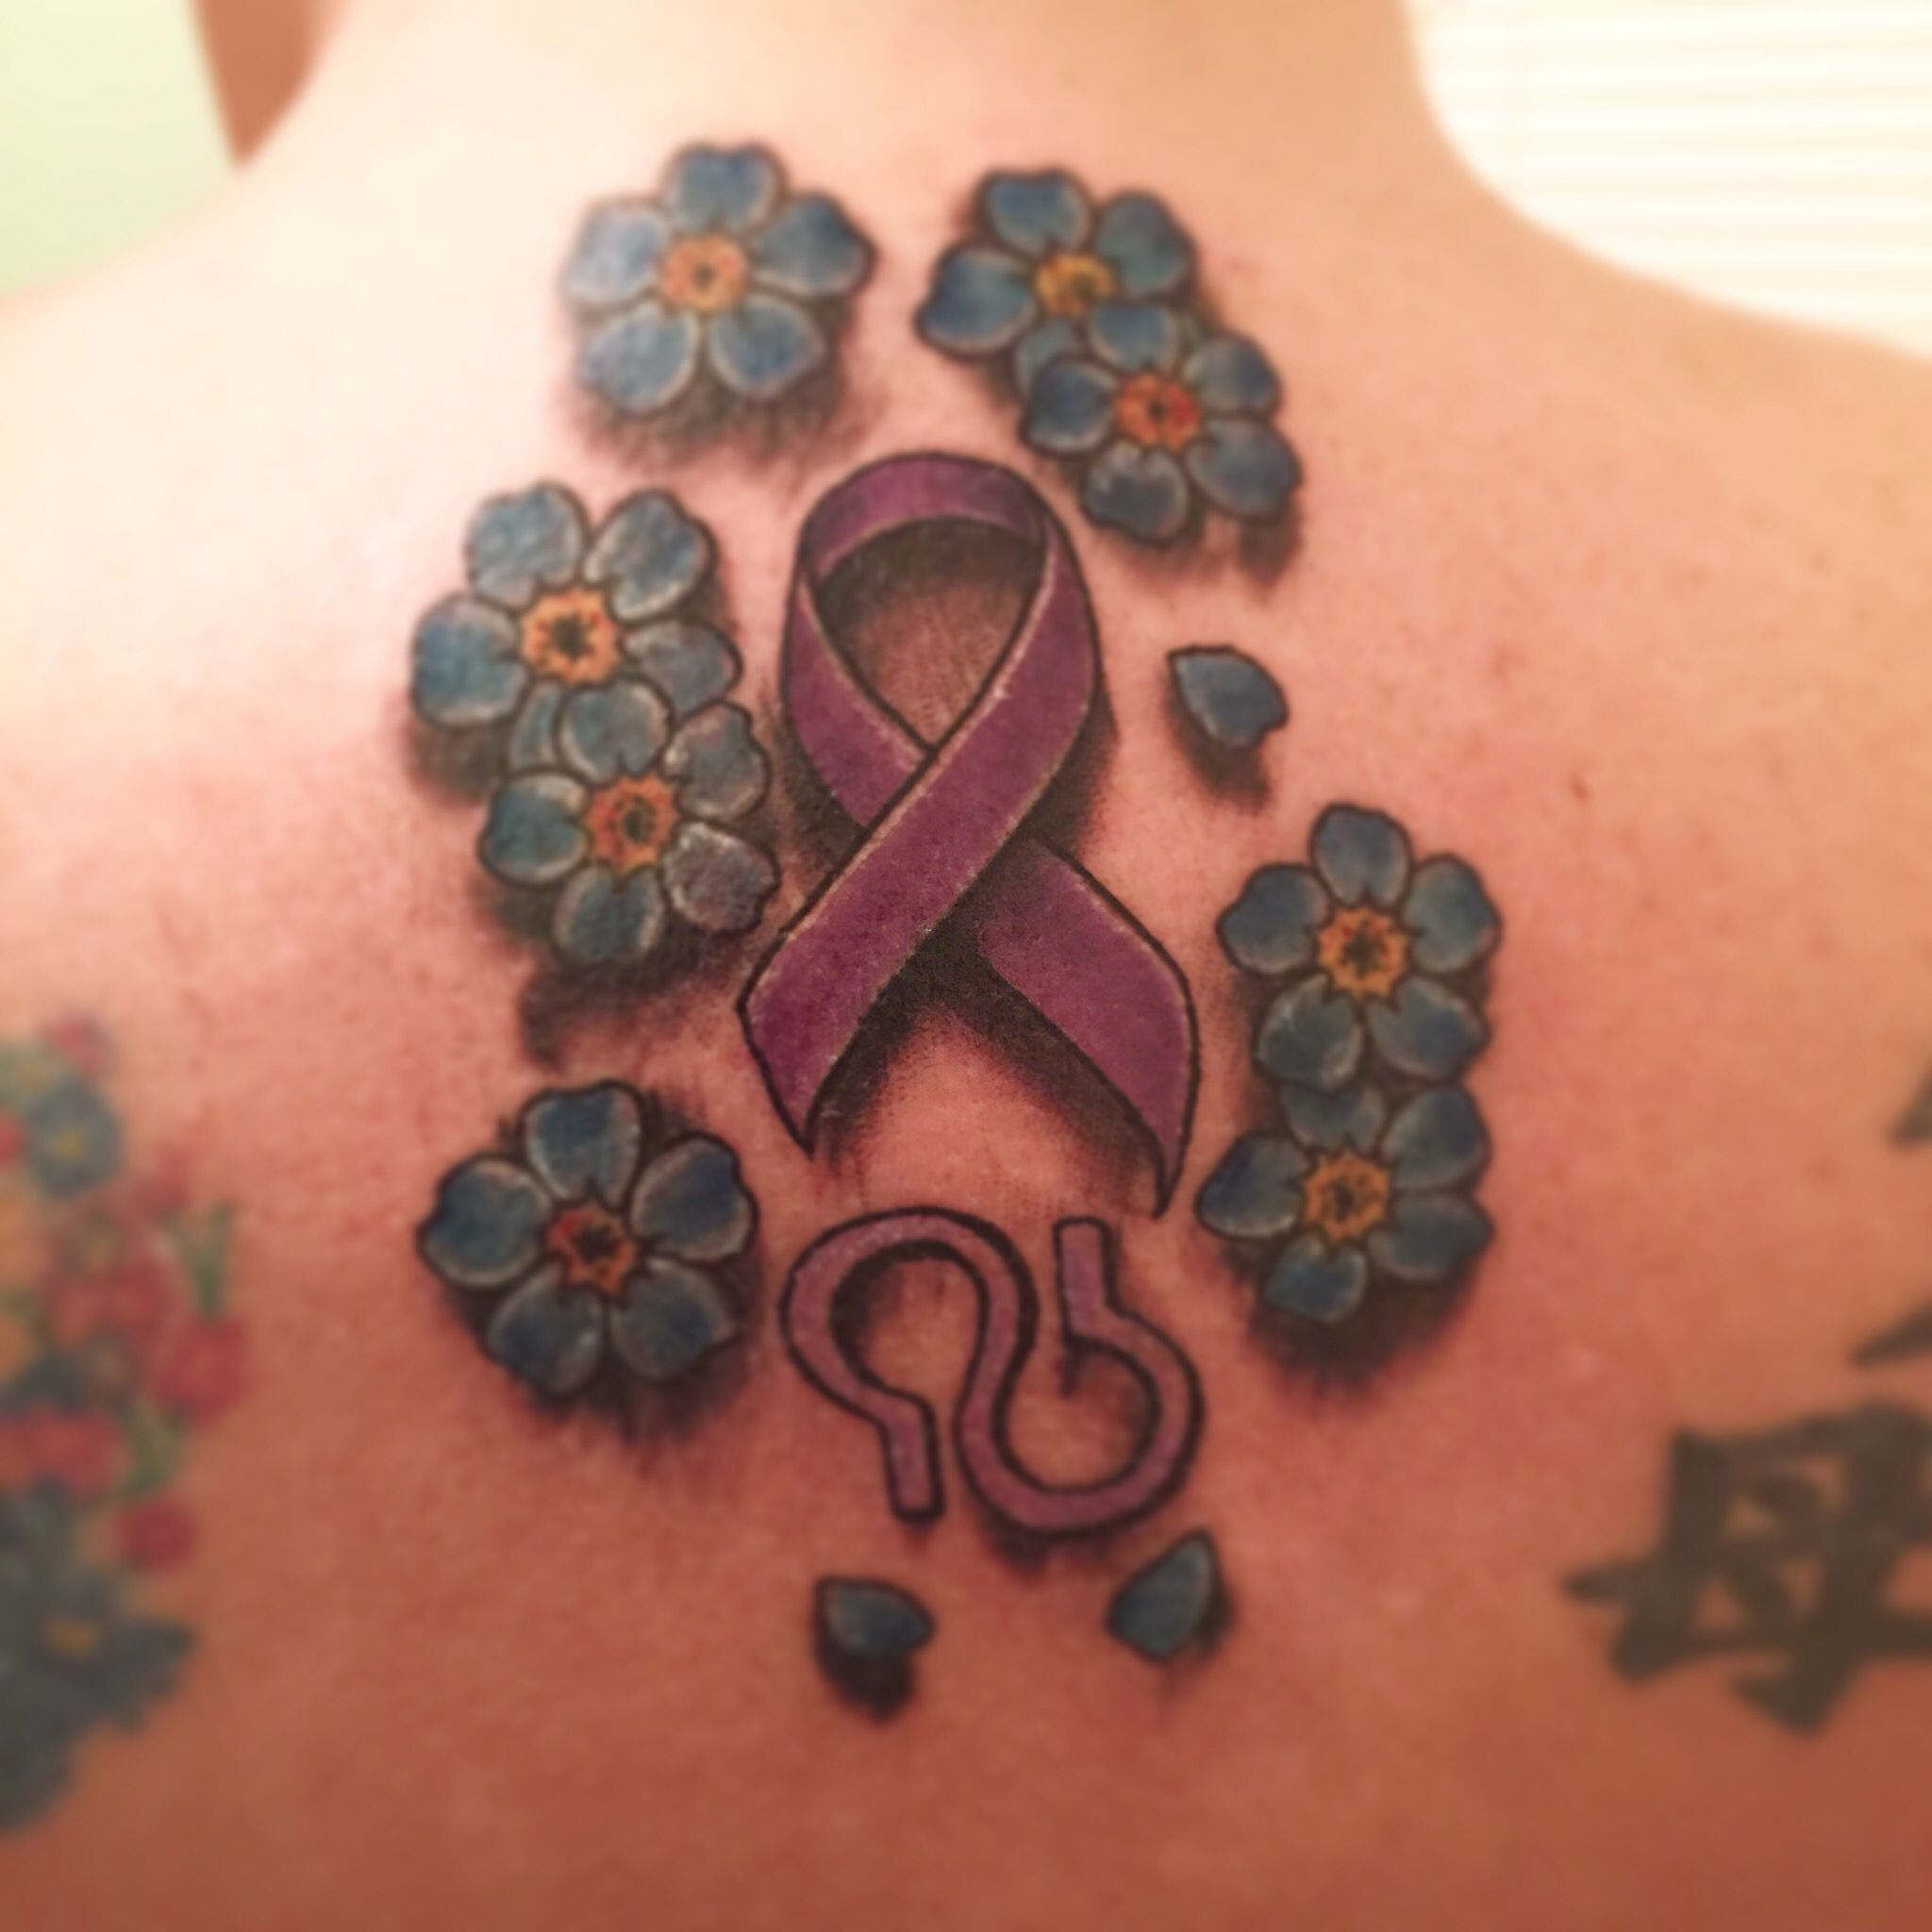 Purple ribbon for epilepsy lupus and alzheimers awareness symbol purple ribbon for epilepsy lupus and alzheimers awareness symbol is alzheimers symbol and forget me biocorpaavc Image collections